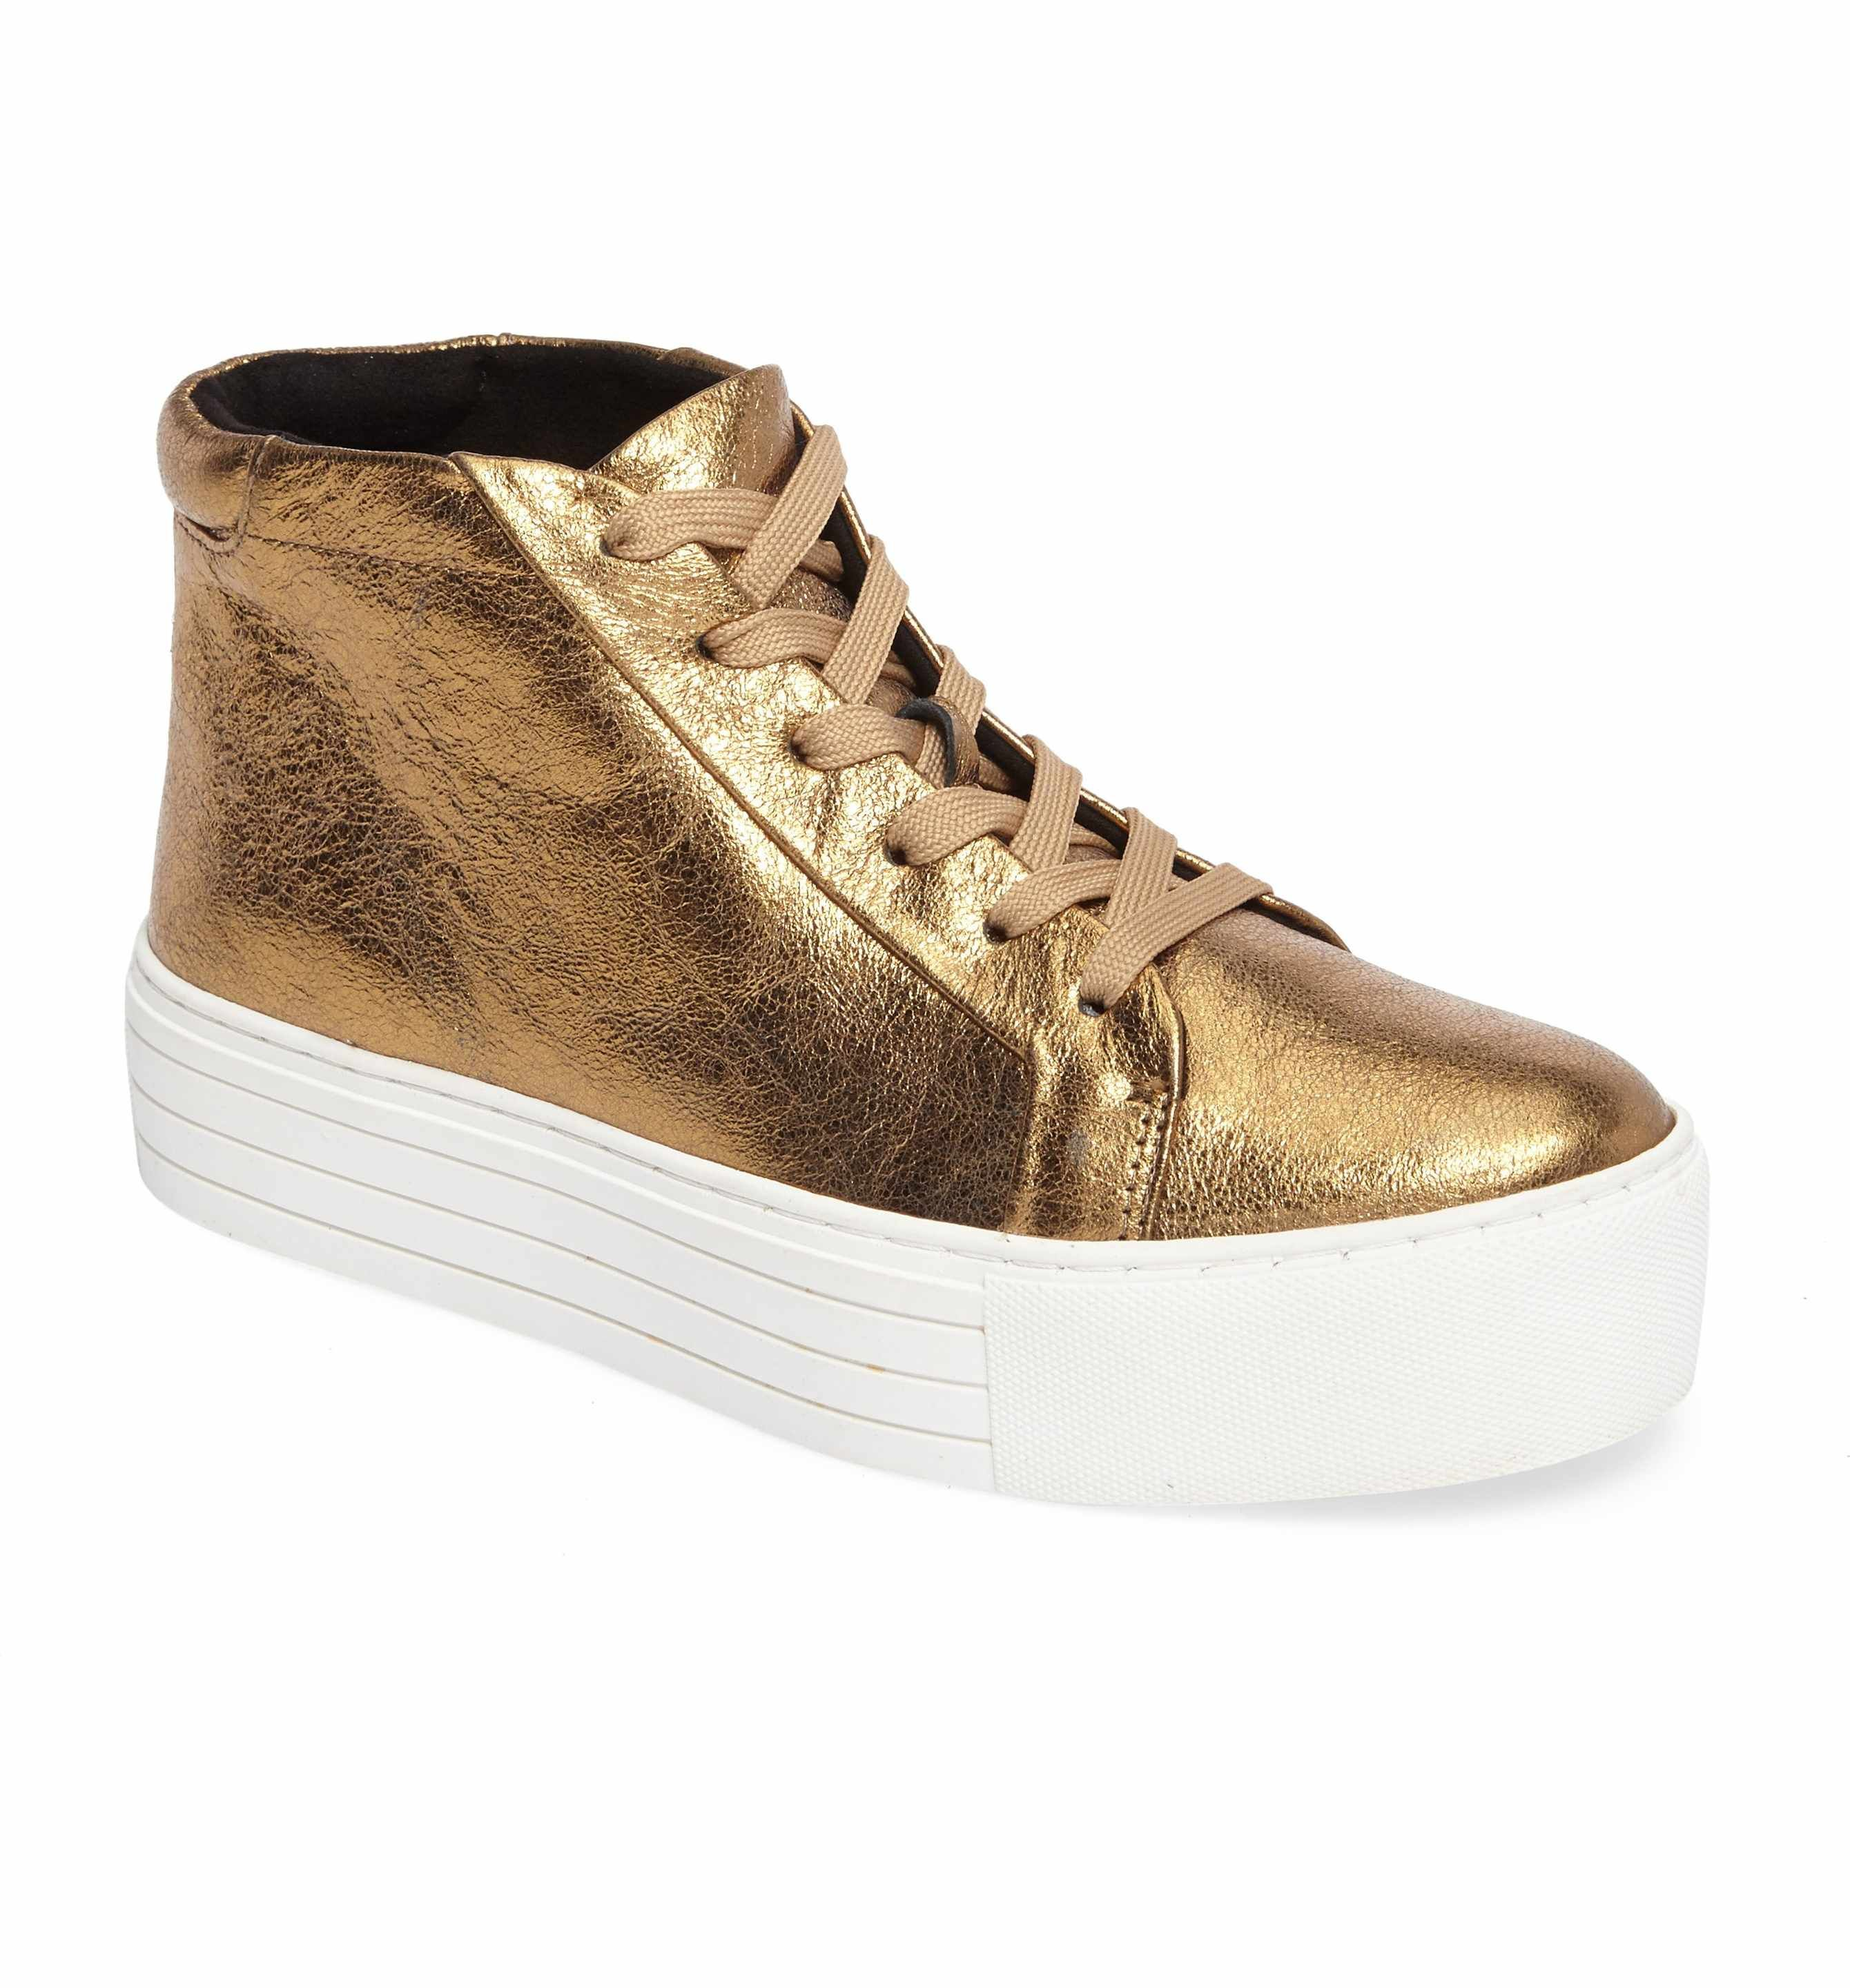 a326d85b092 Janette High Top Platform Sneaker. Main Image - Kenneth Cole New York ...